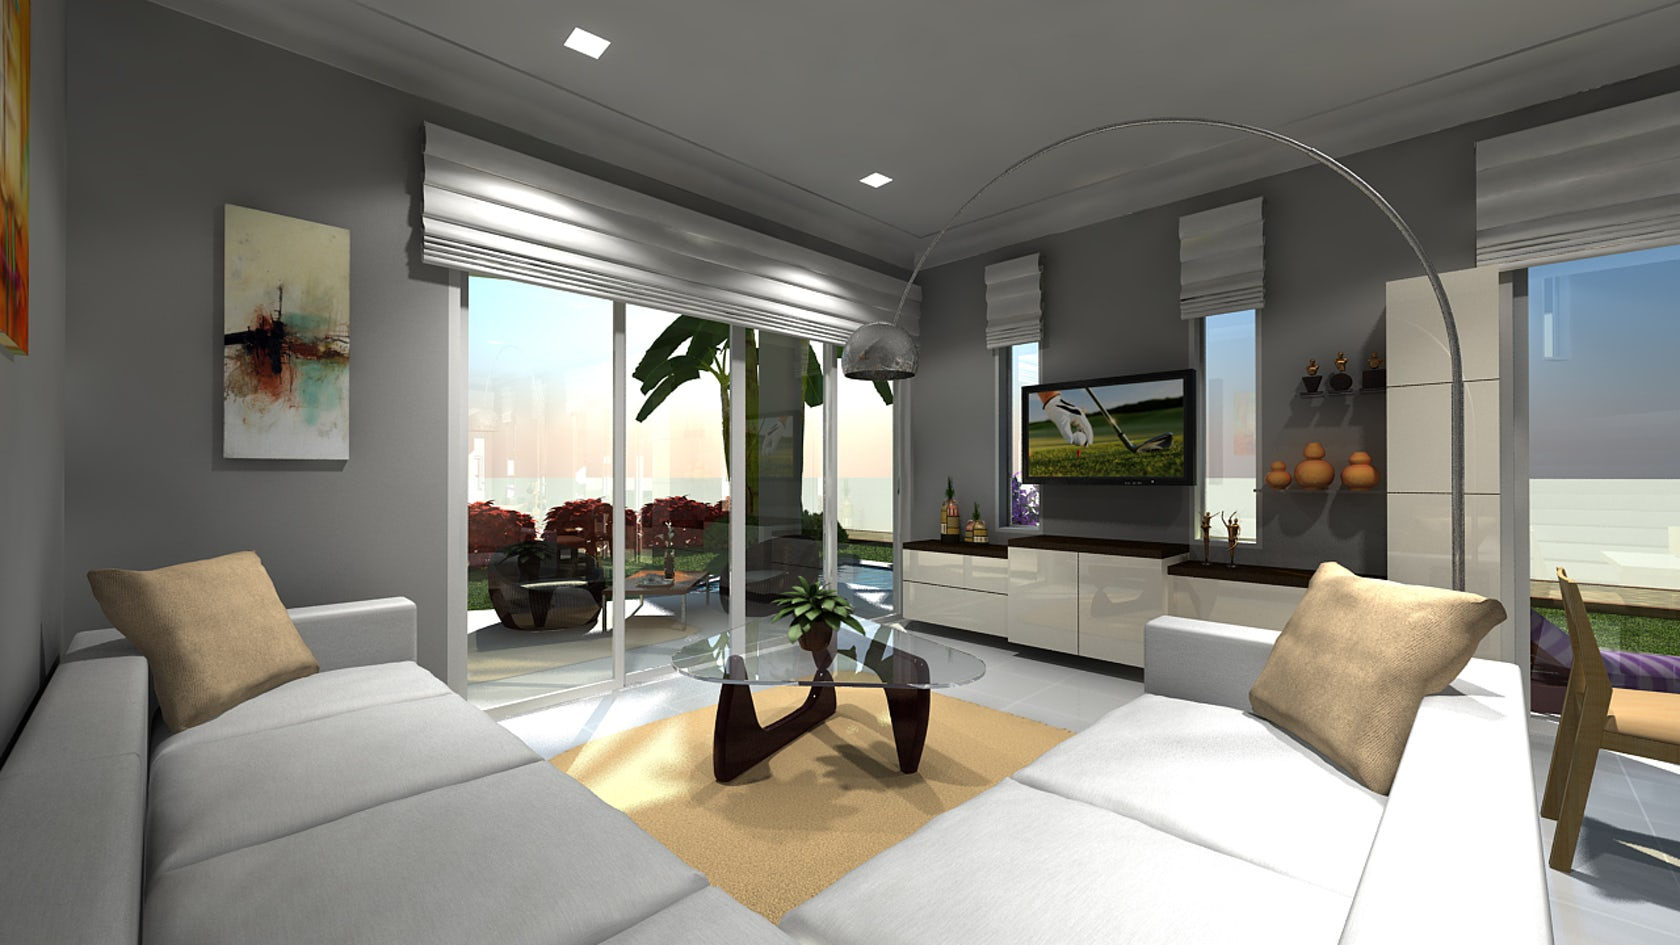 interior architectural 3d modeling samples of hotel building architizer. Black Bedroom Furniture Sets. Home Design Ideas